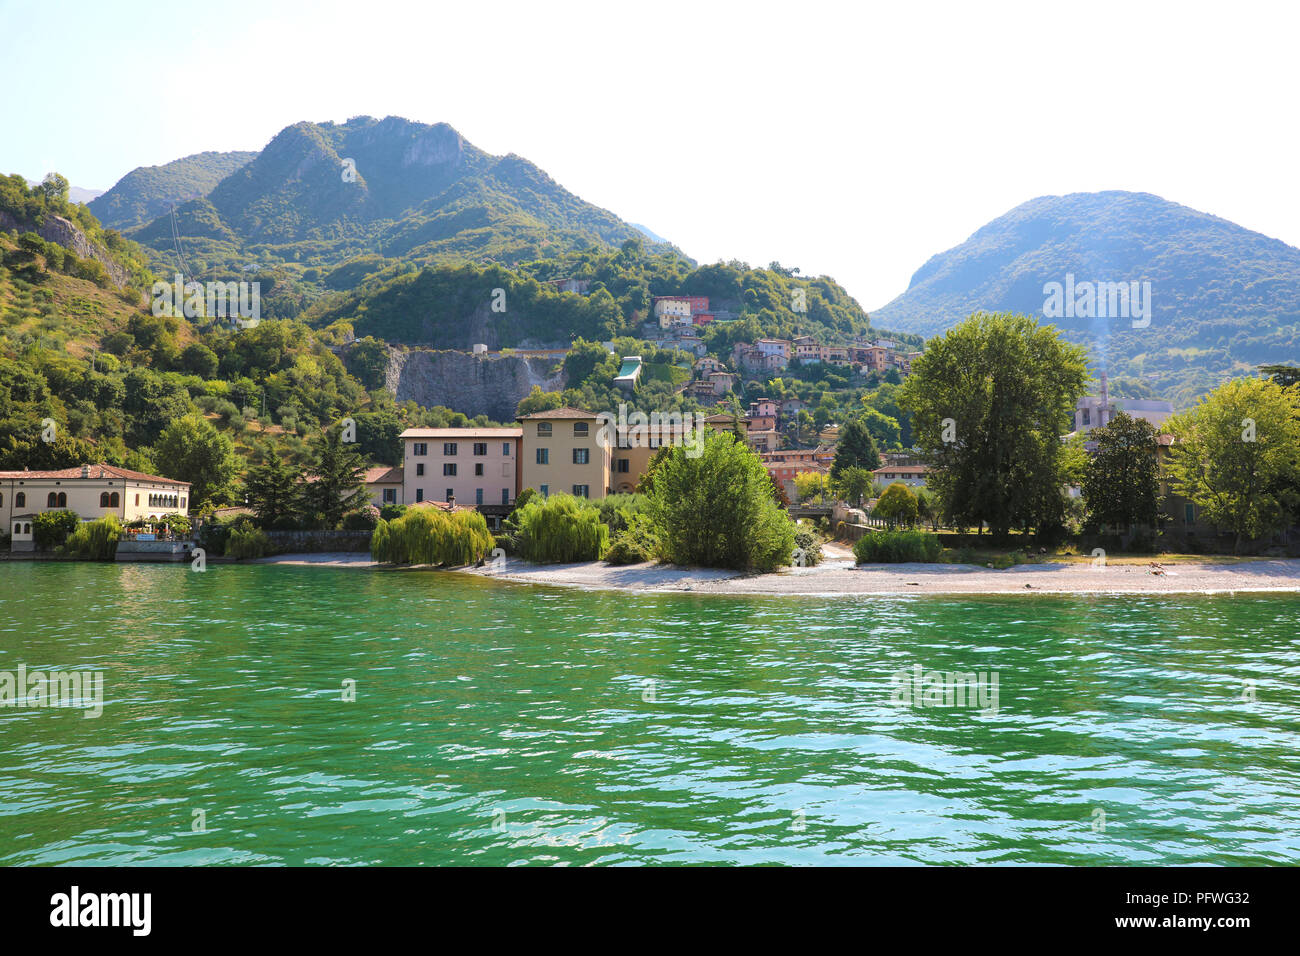 Small village on Lake Iseo, Italy Stock Photo